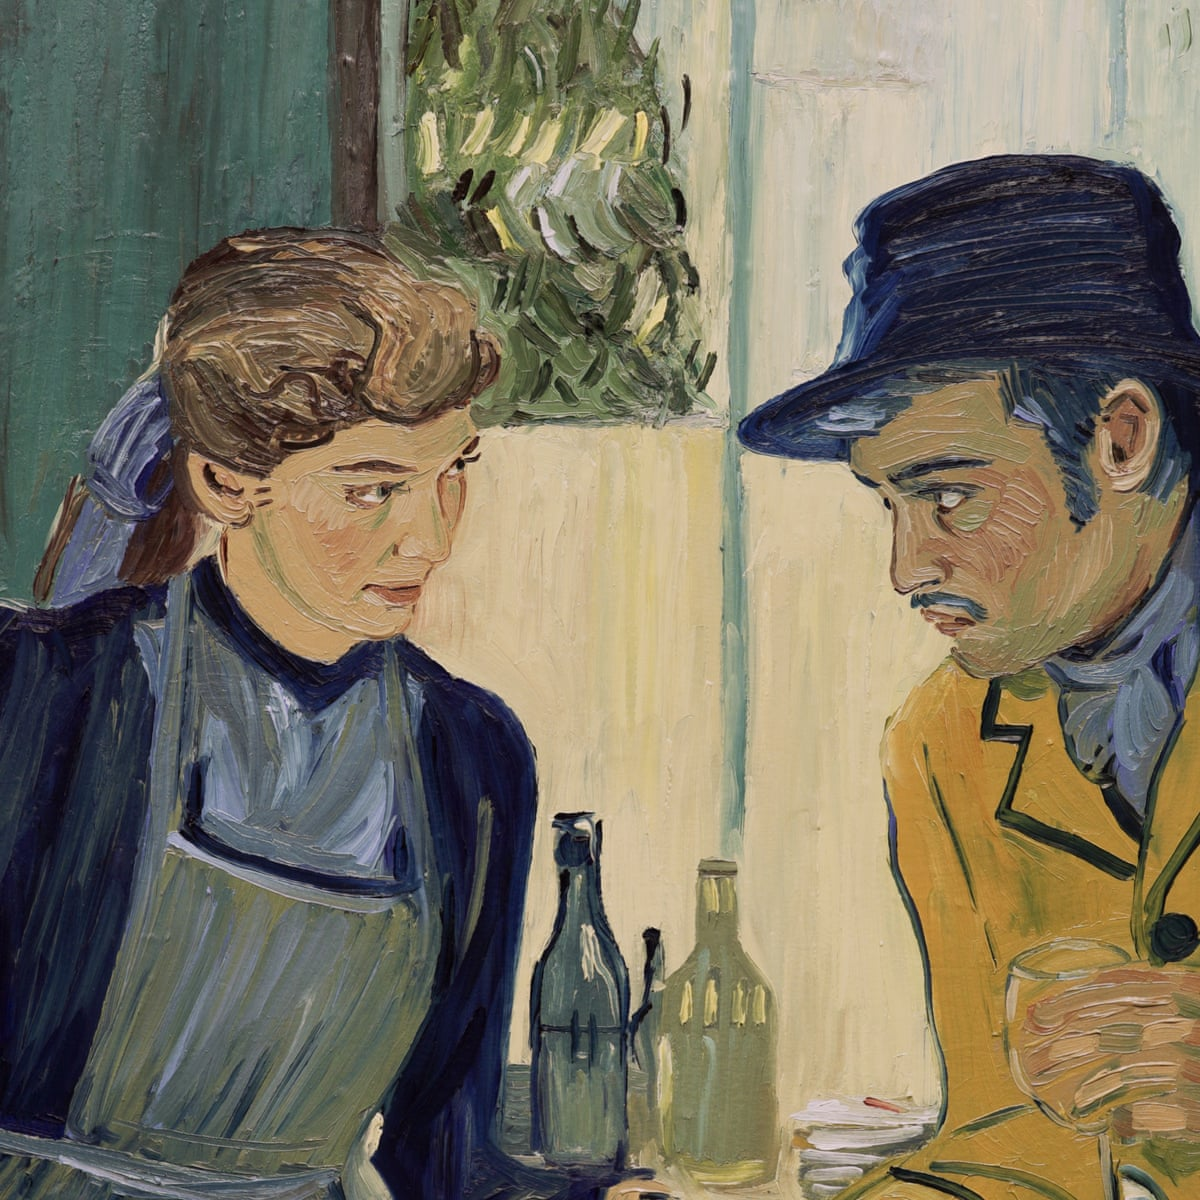 65 000 Portraits Of The Artist How Van Gogh S Life Became The World S First Fully Painted Film Animation In Film The Guardian